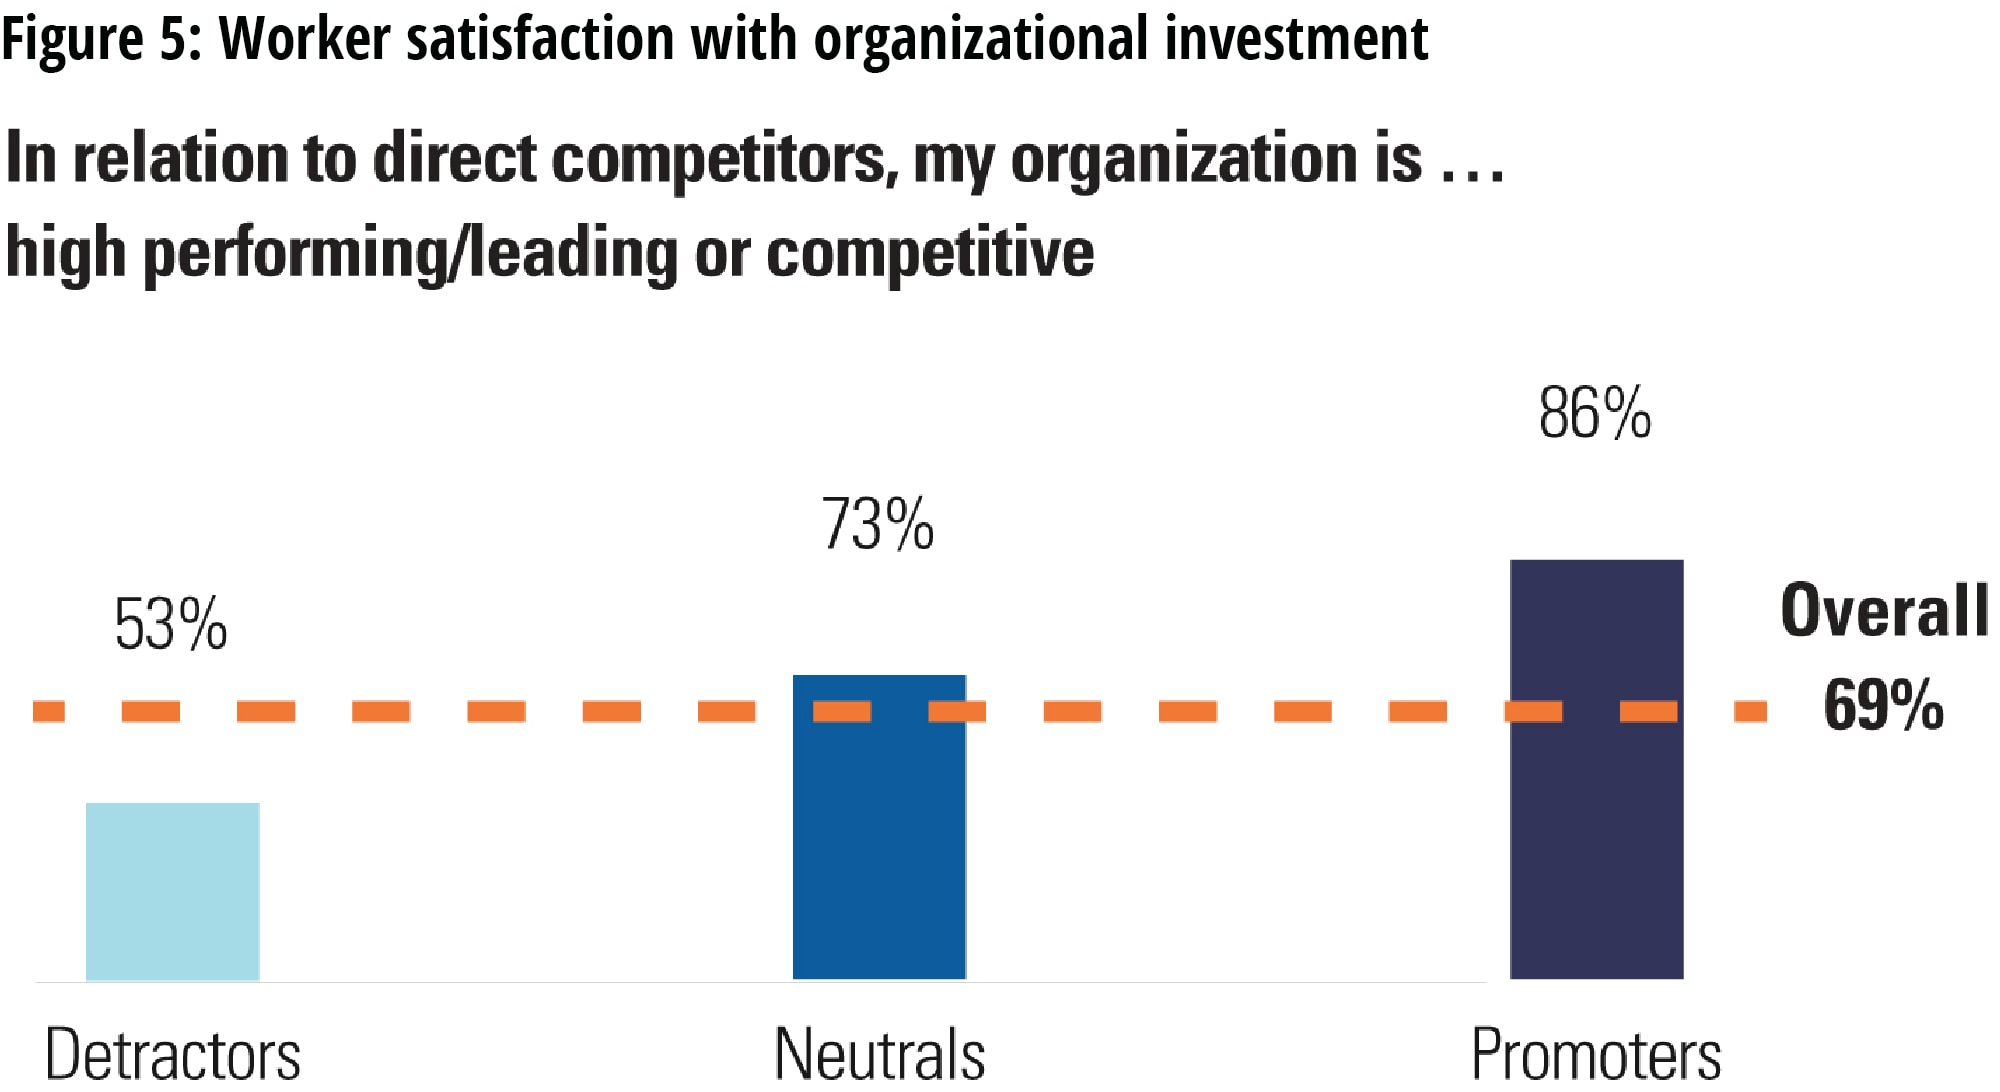 Workers satisfaction with organizational investment